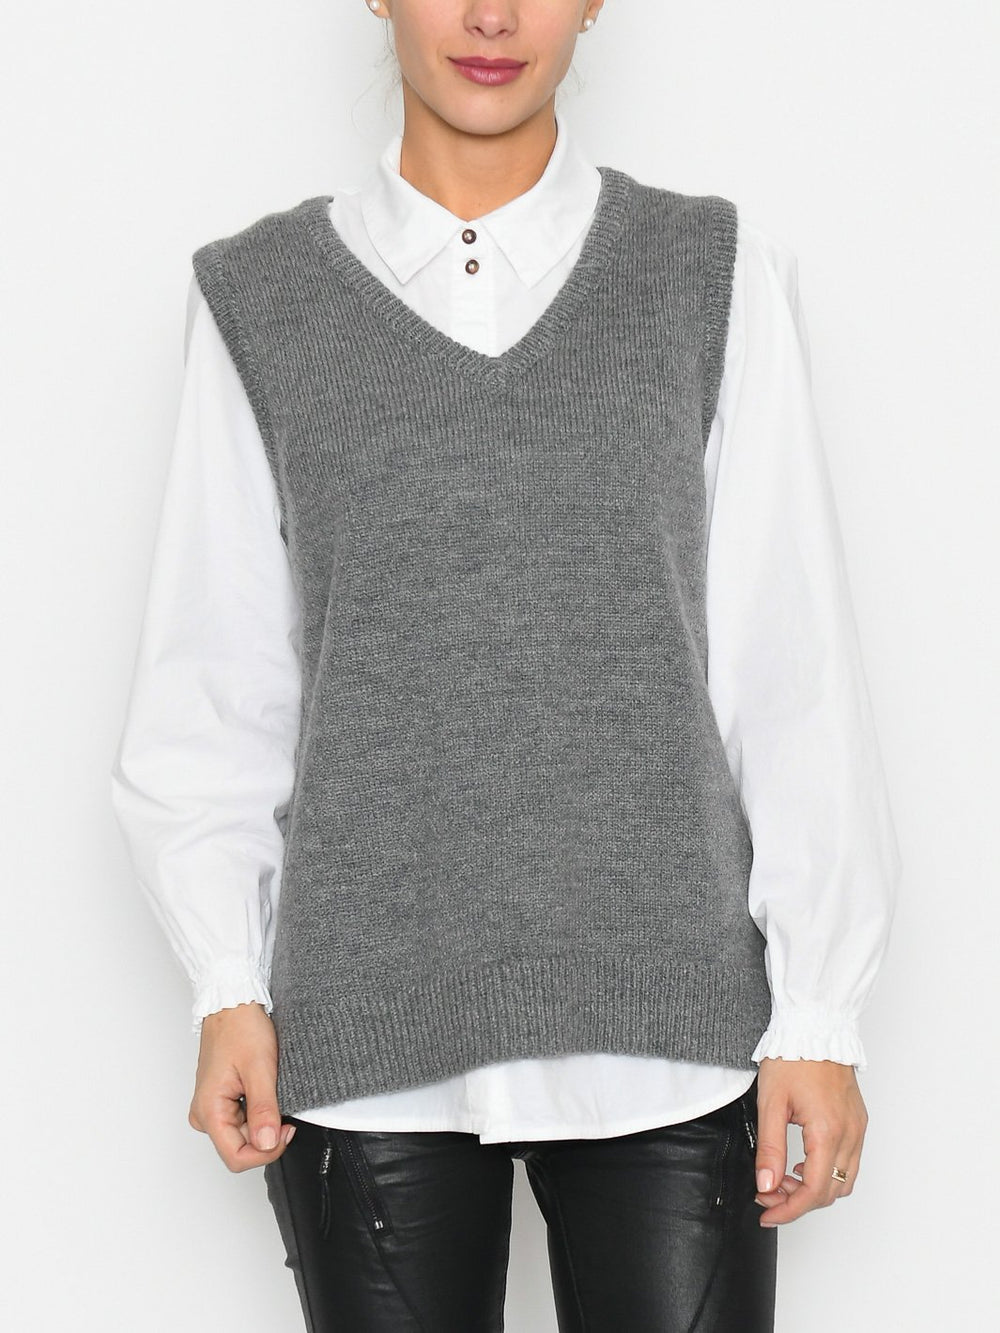 Luxzuz Taia vest medium grey melange - Online-Mode